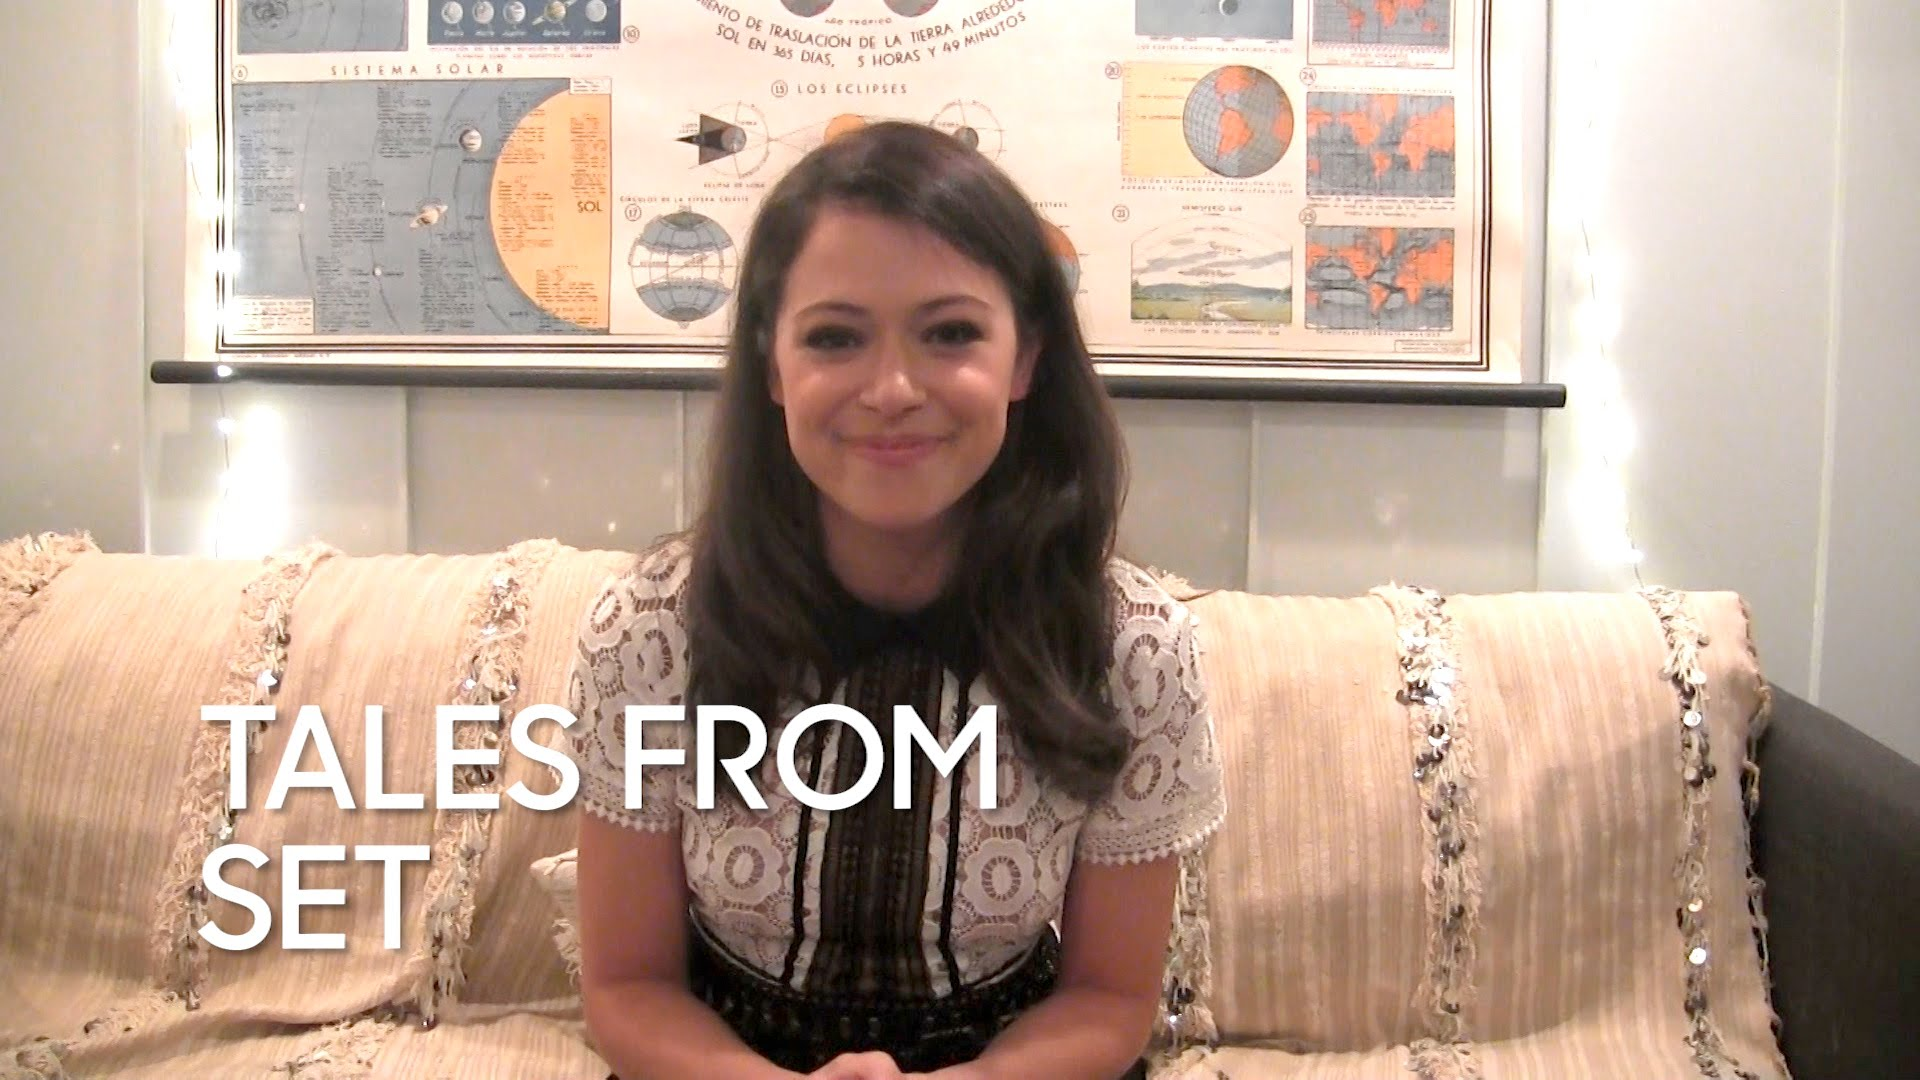 Watch Late Night with Jimmy Fallon Season  - Tales from Set: Tatiana Maslany on